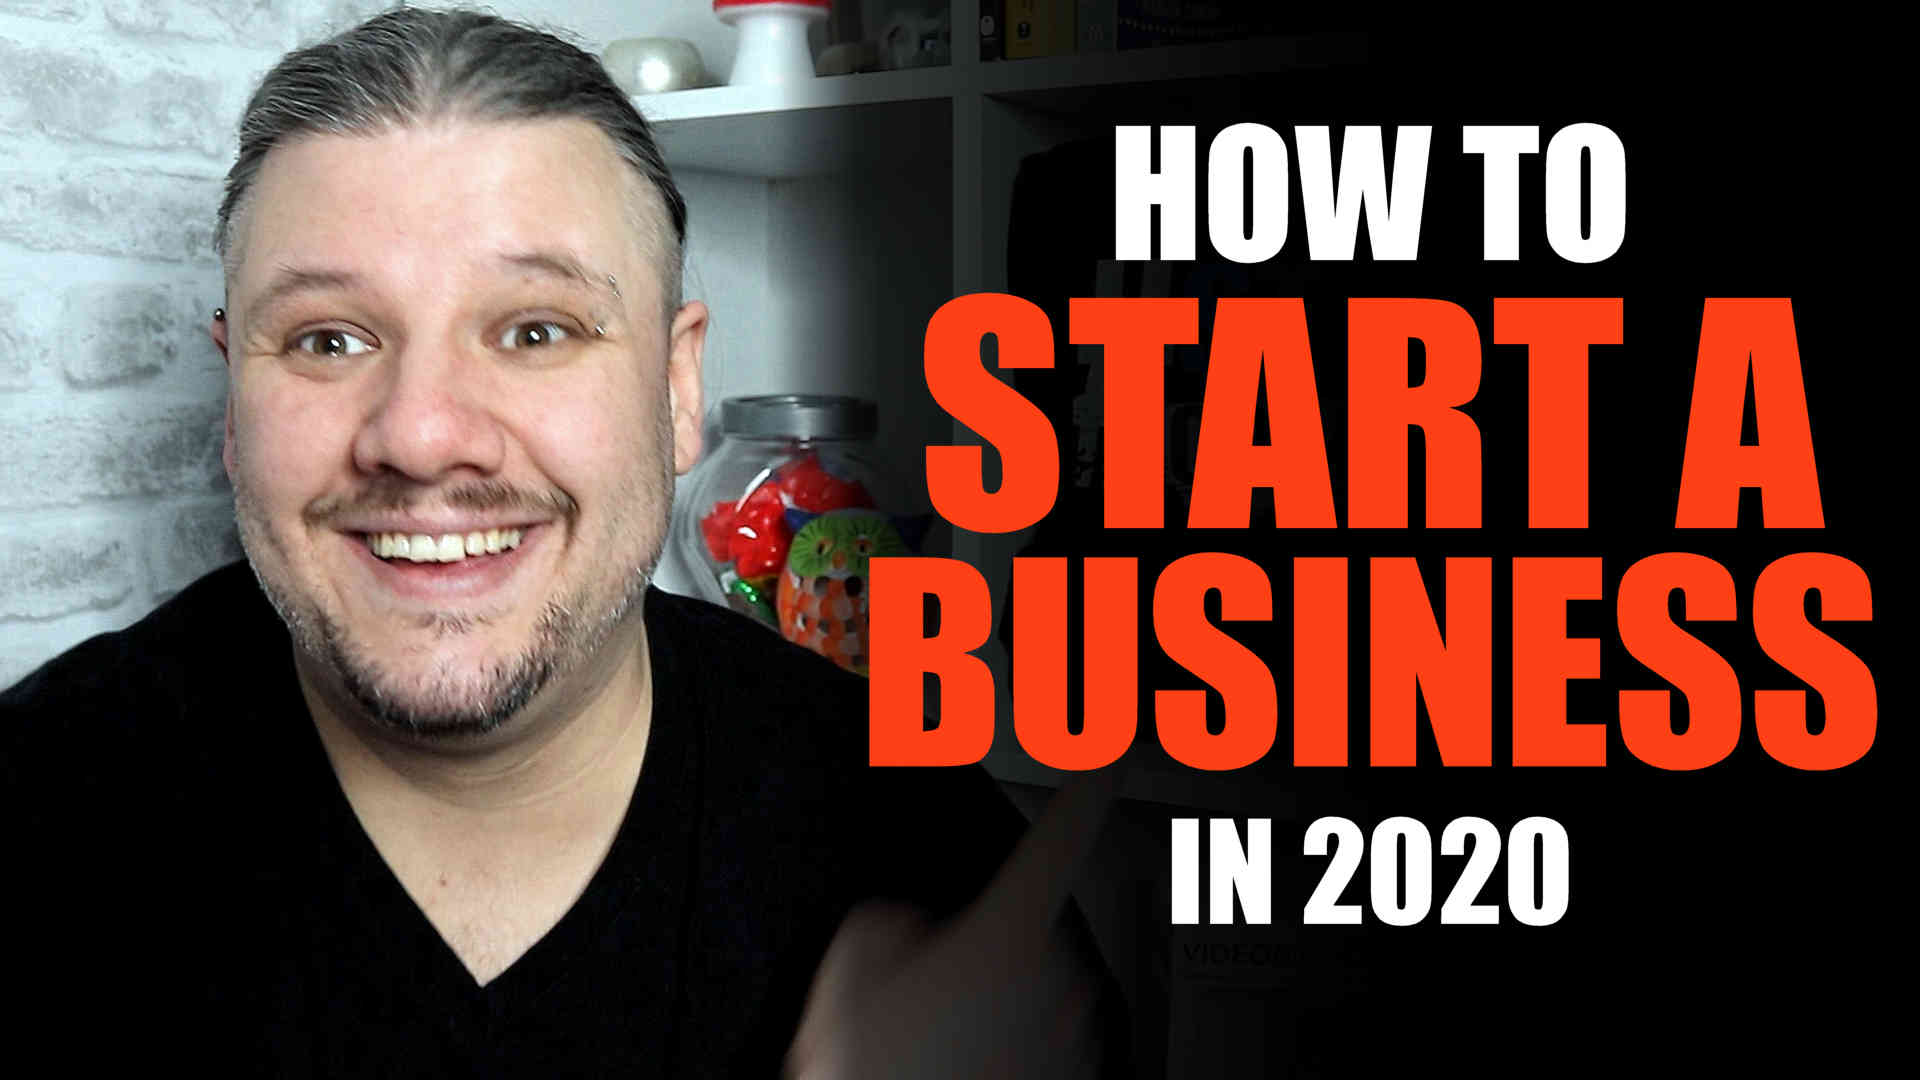 9 Steps To Starting Your Own Business in 2020 (Step by Step), alan spicer,alanspicer,steps to starting a business,steps to starting an online business,steps to starting a small business,starting a business,starting a business with no money,how to start a business,how to start a business with no money,starting a business from scratch,starting a business step by step,starting a business in 2020,start my own business,side hustles 2020,side hustles,side hustle into a full-time business,business,entrepreneur,entrepreneurship,2020